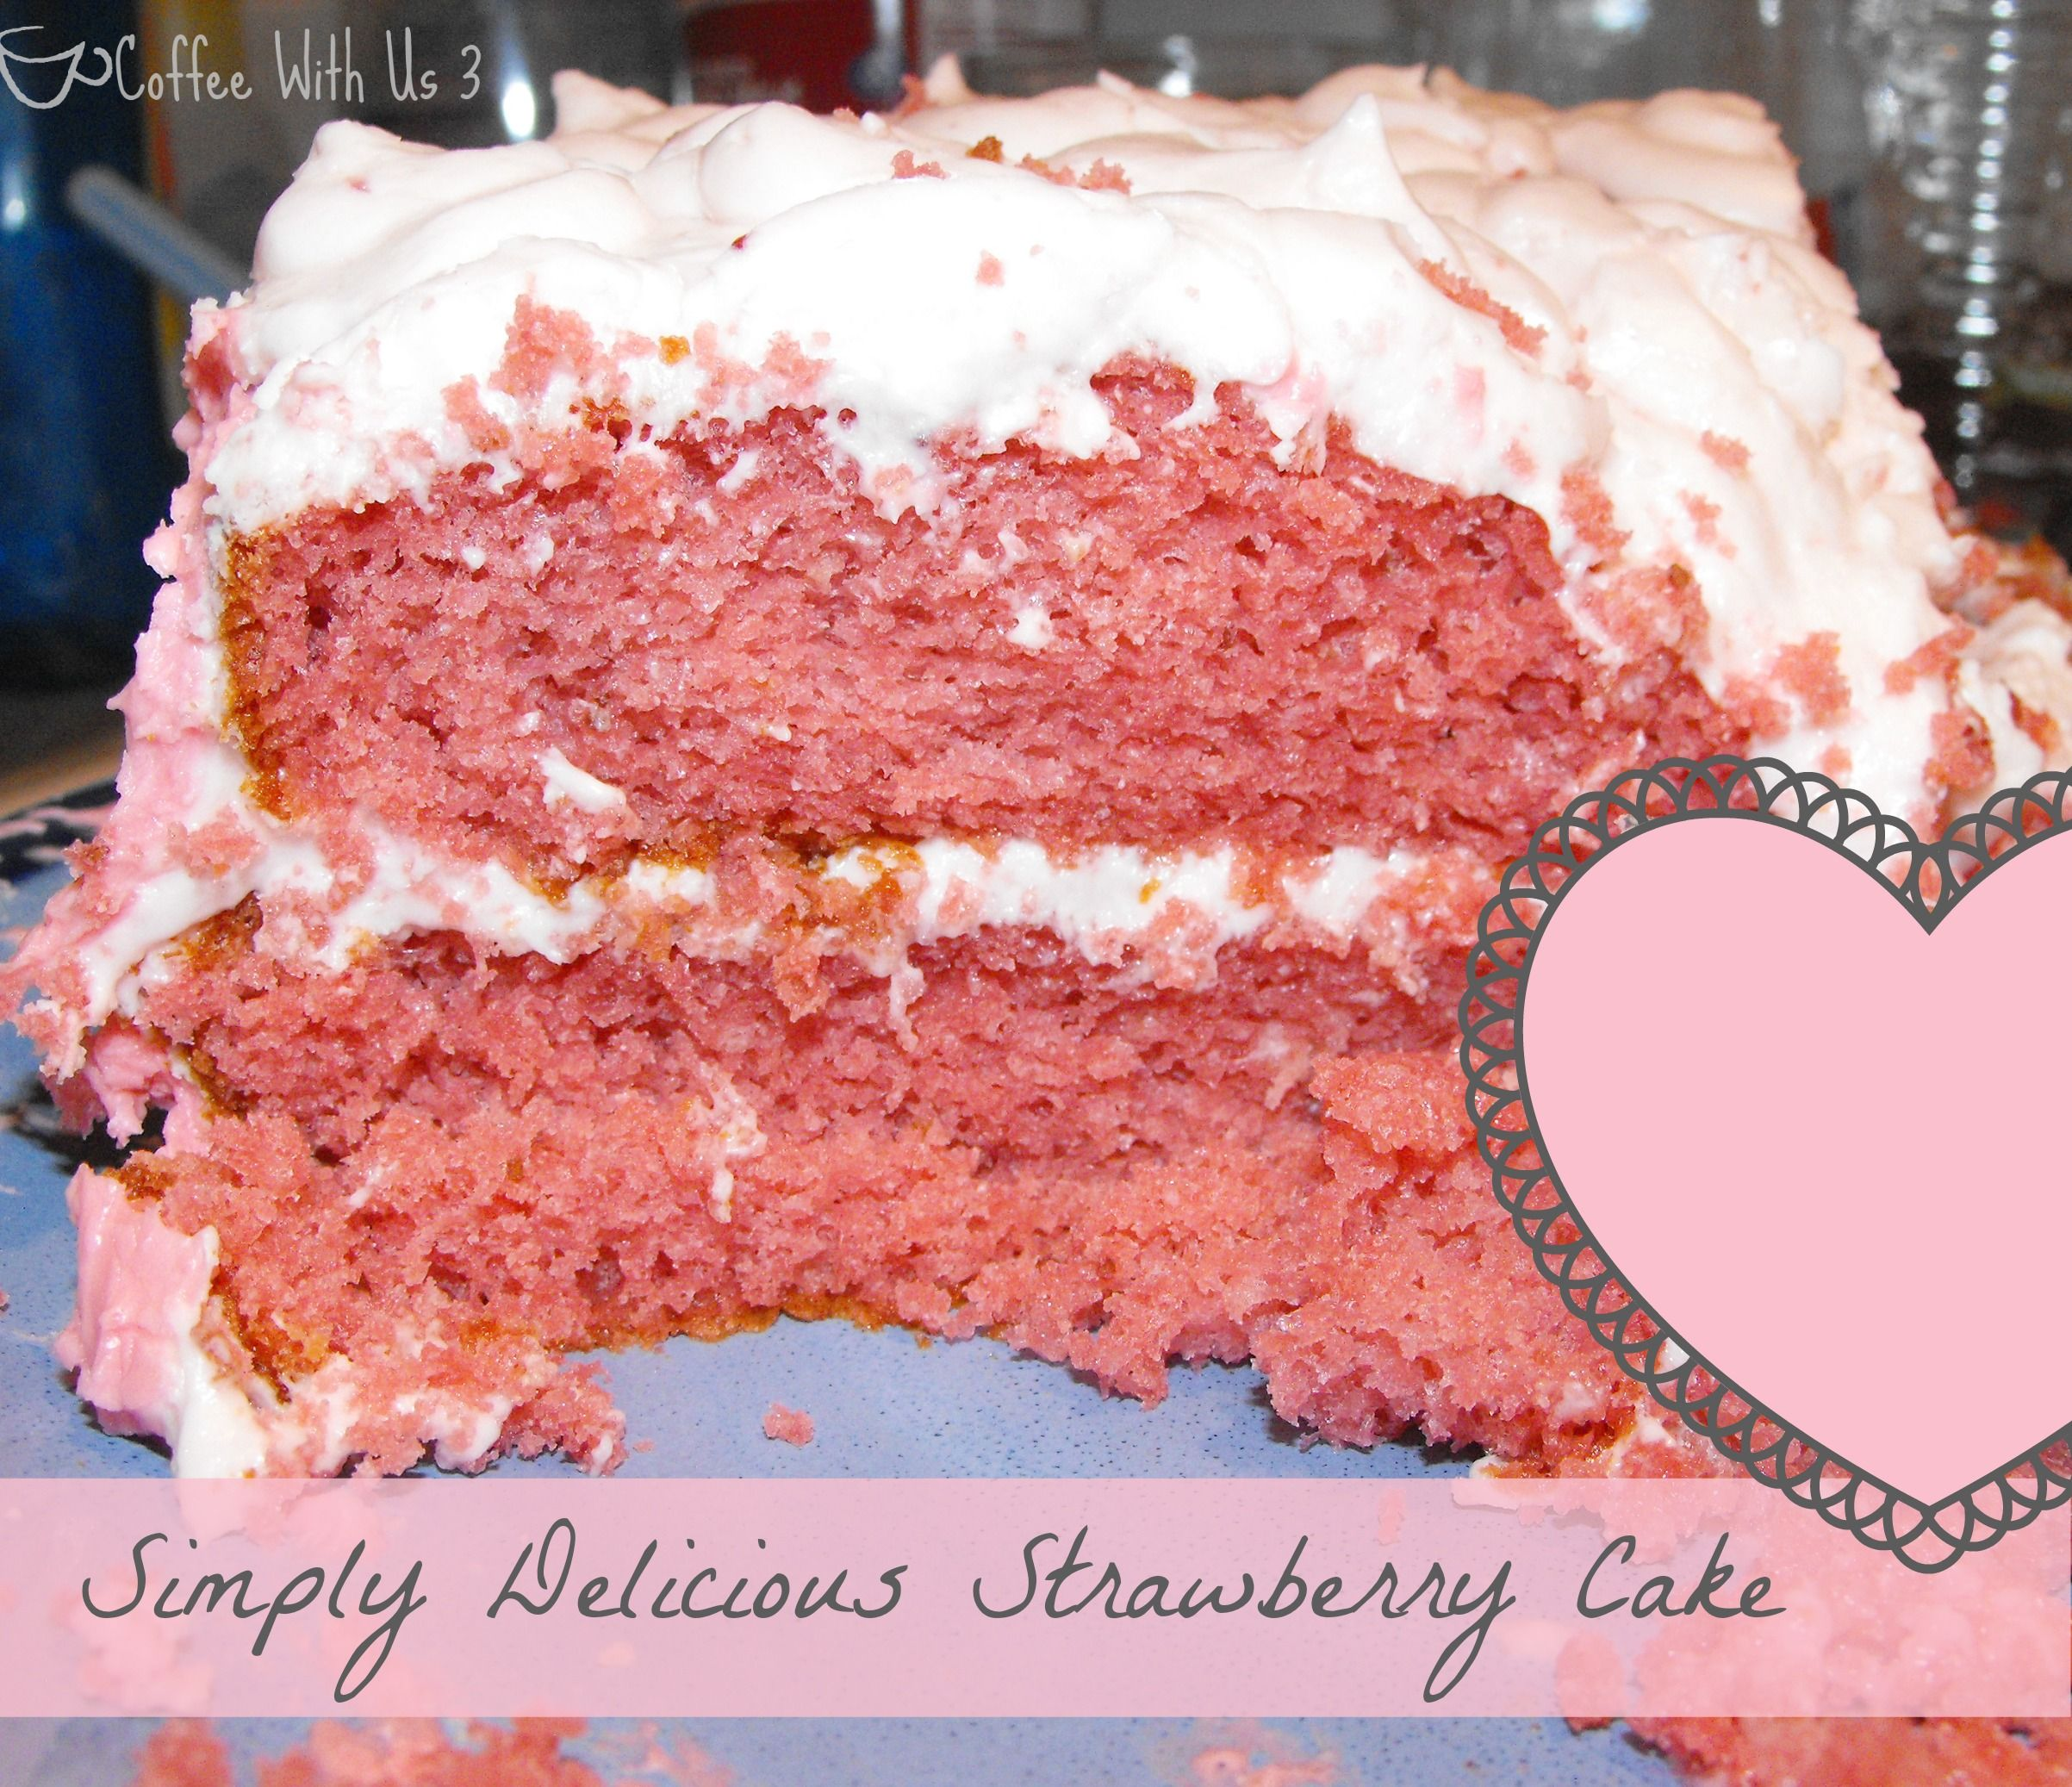 Moist and delicious strawberry cake topped with sweet strawberry frosting in honor of my 4 year old's birthday!